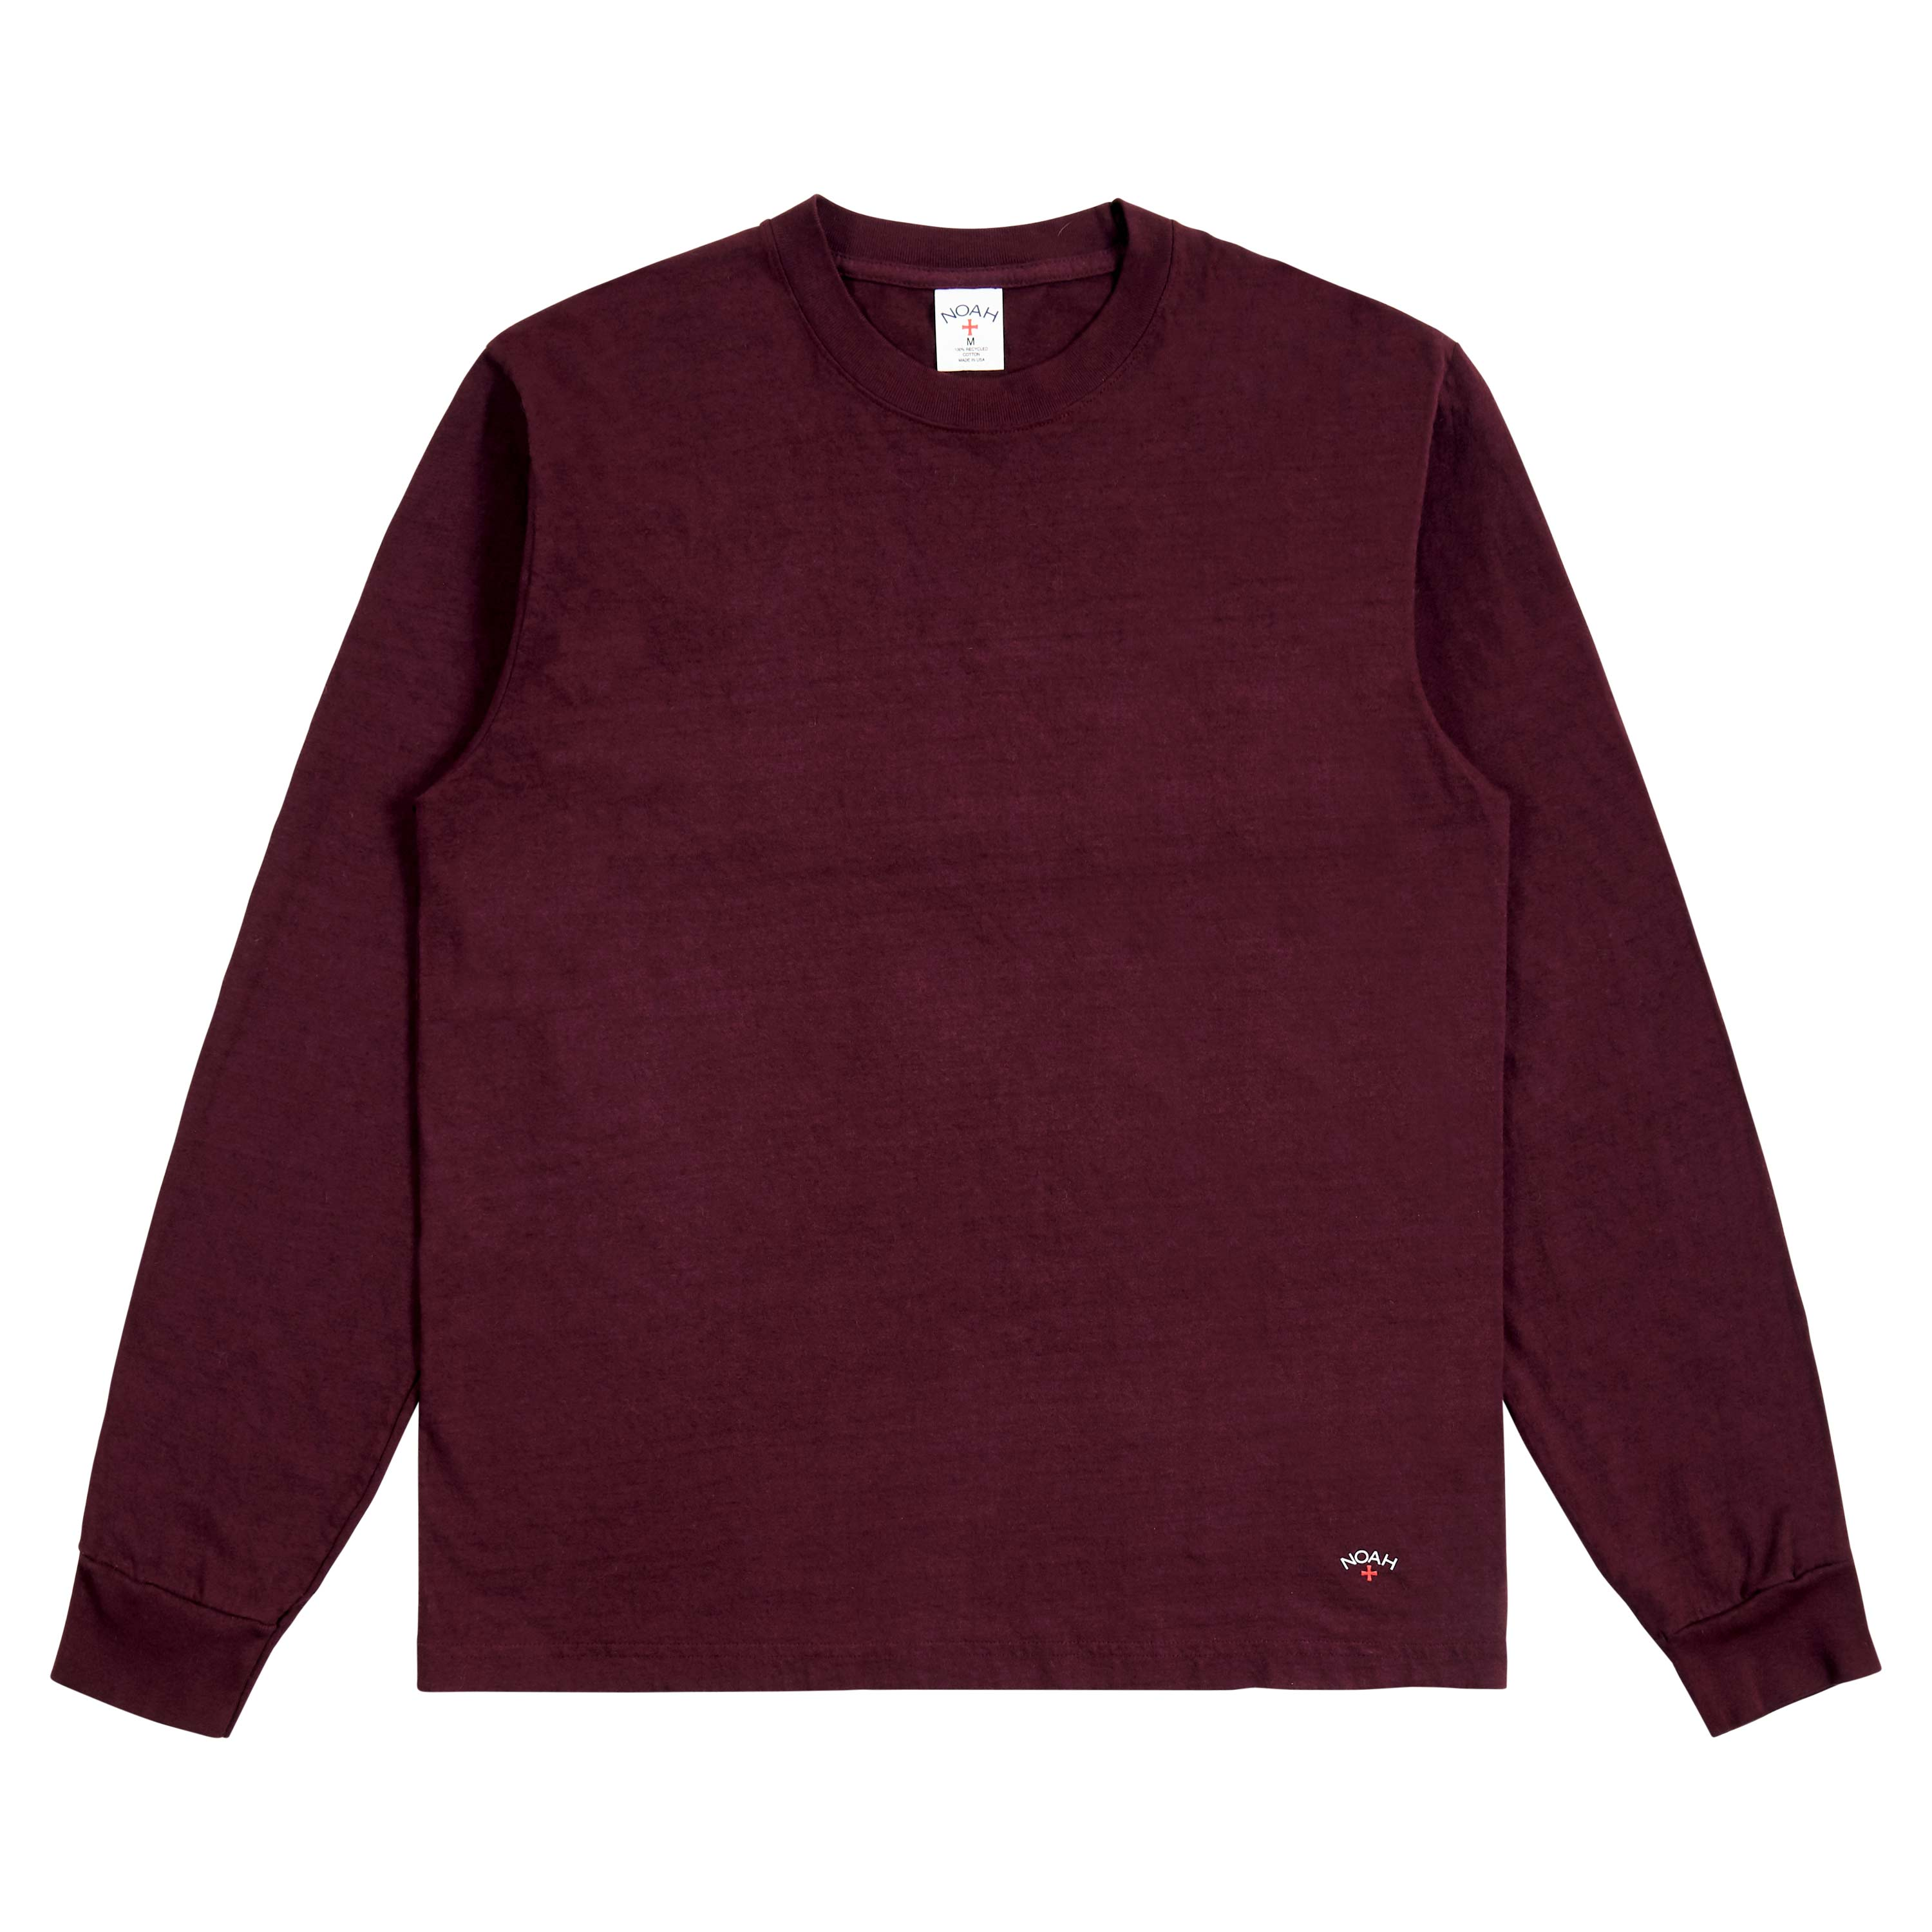 color:burgundy